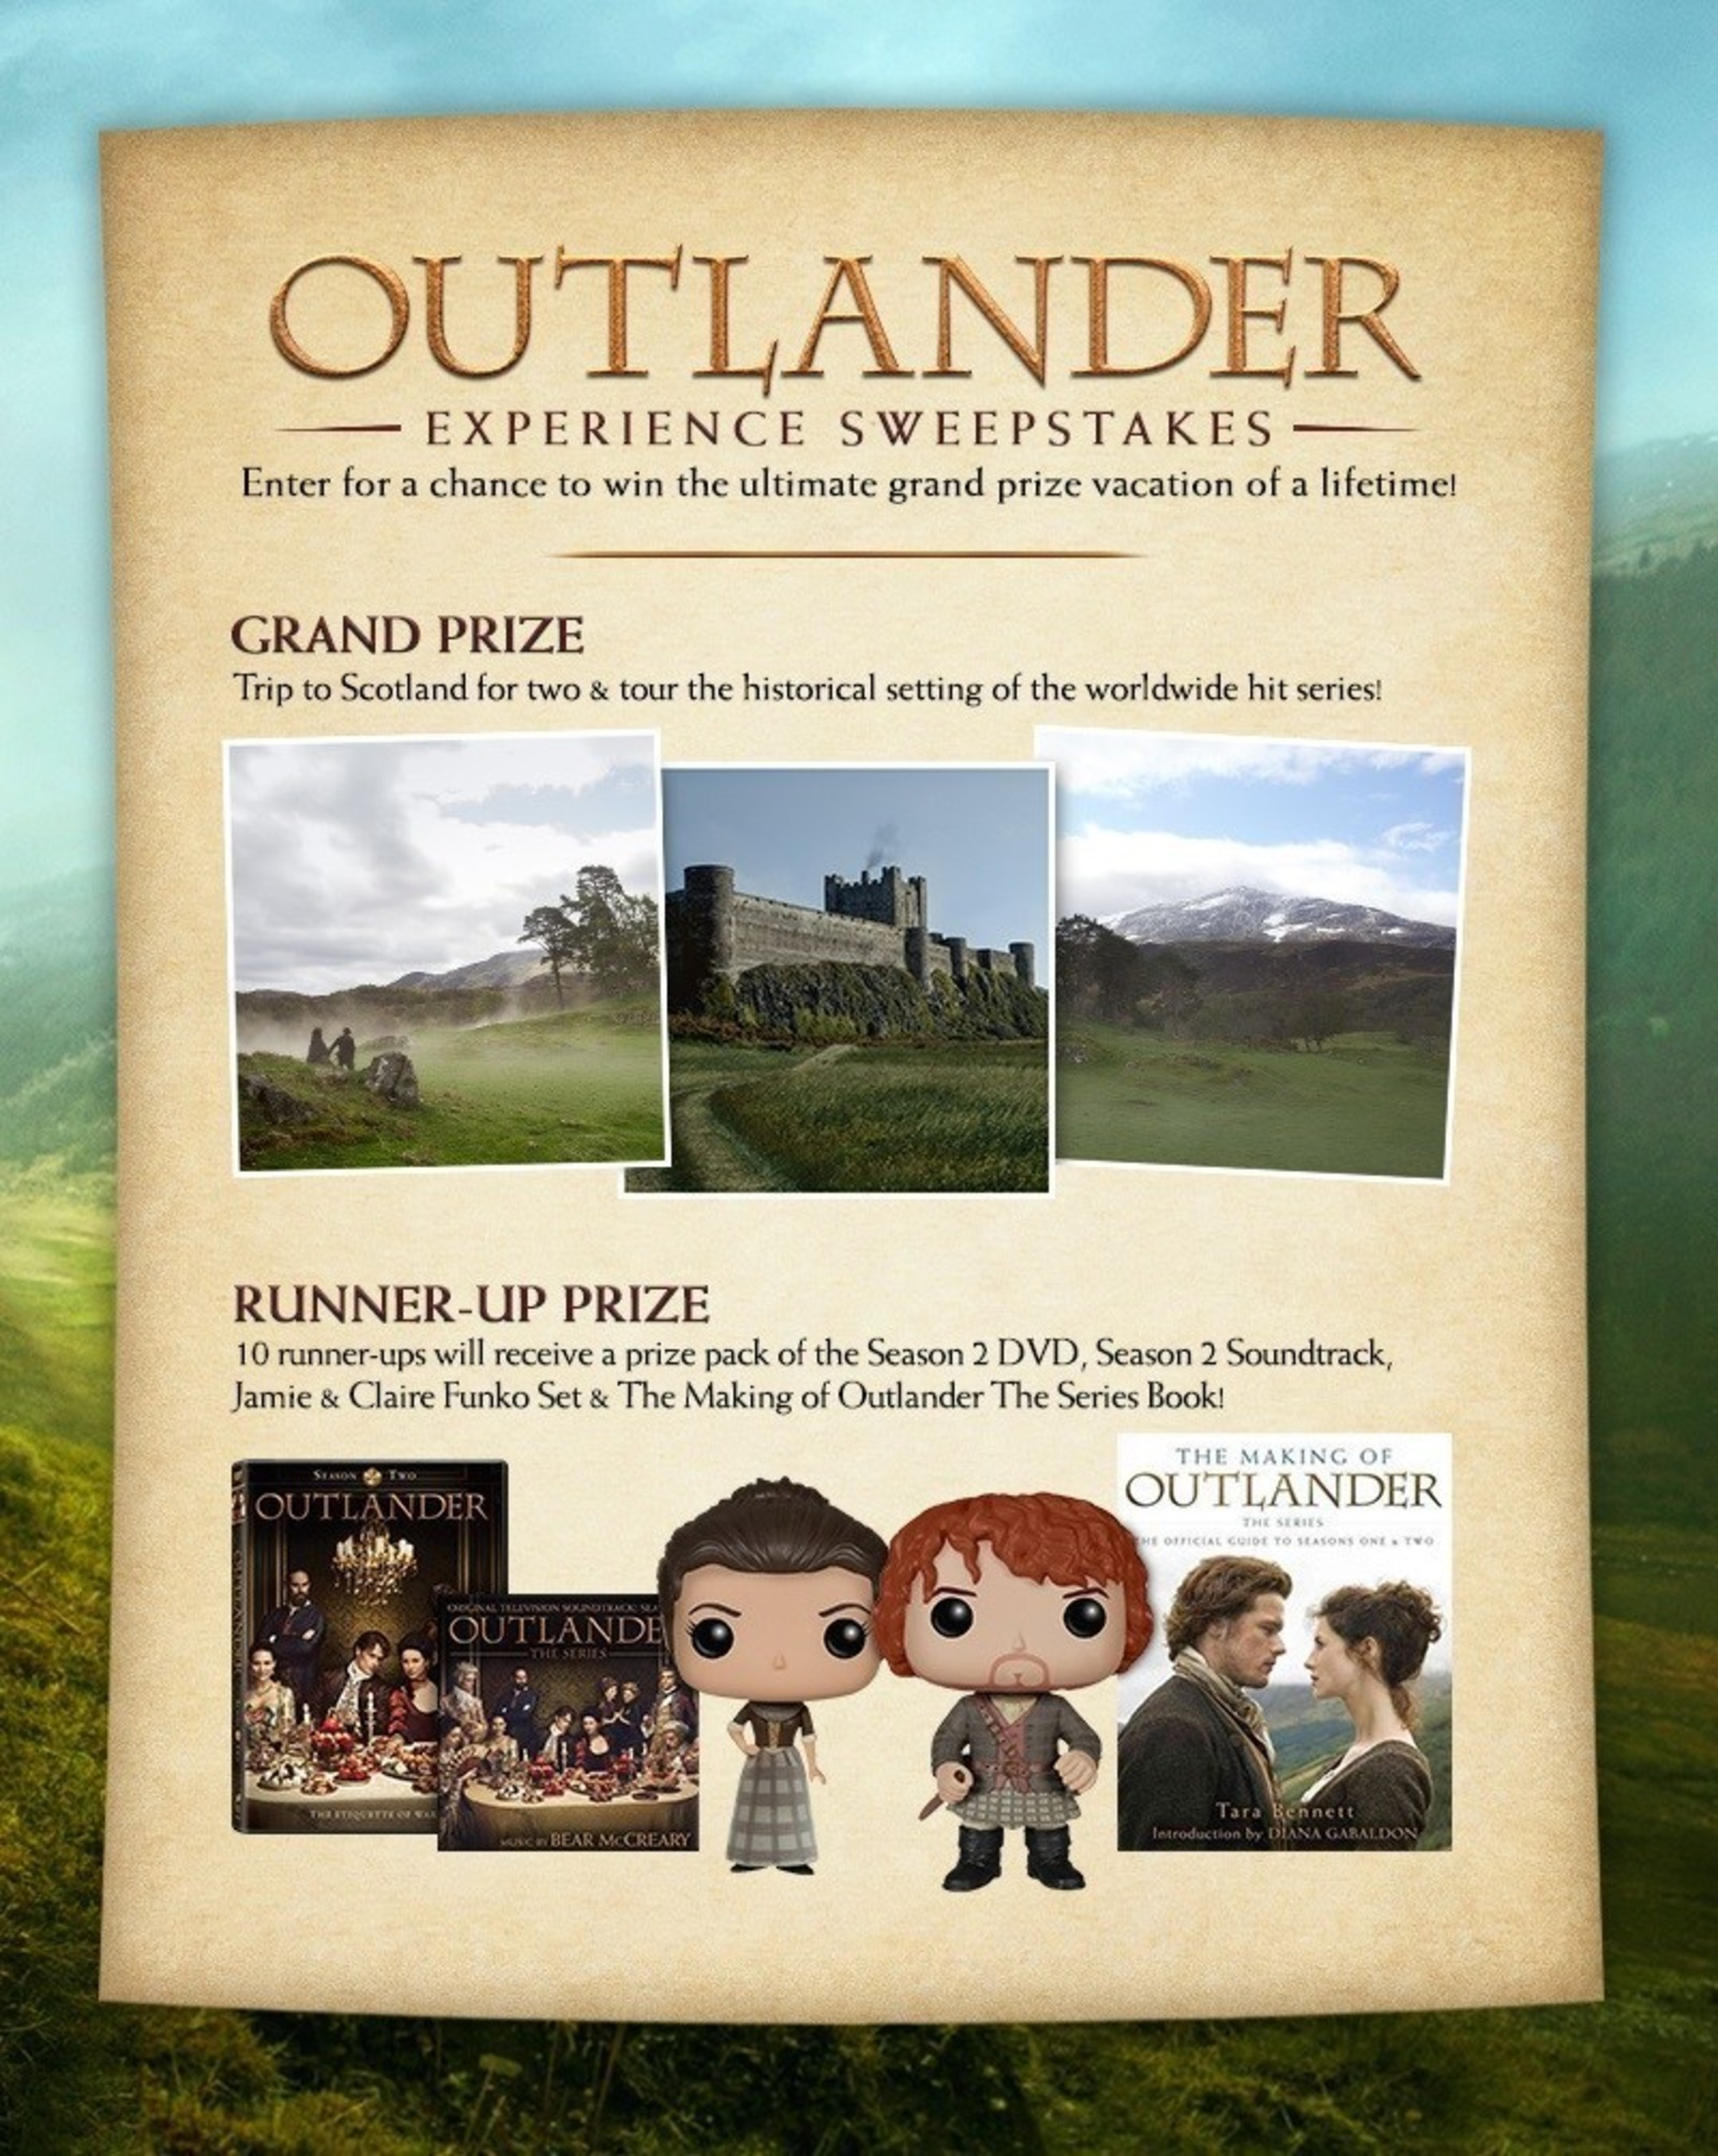 Bring 'Outlander' Home For The Holidays